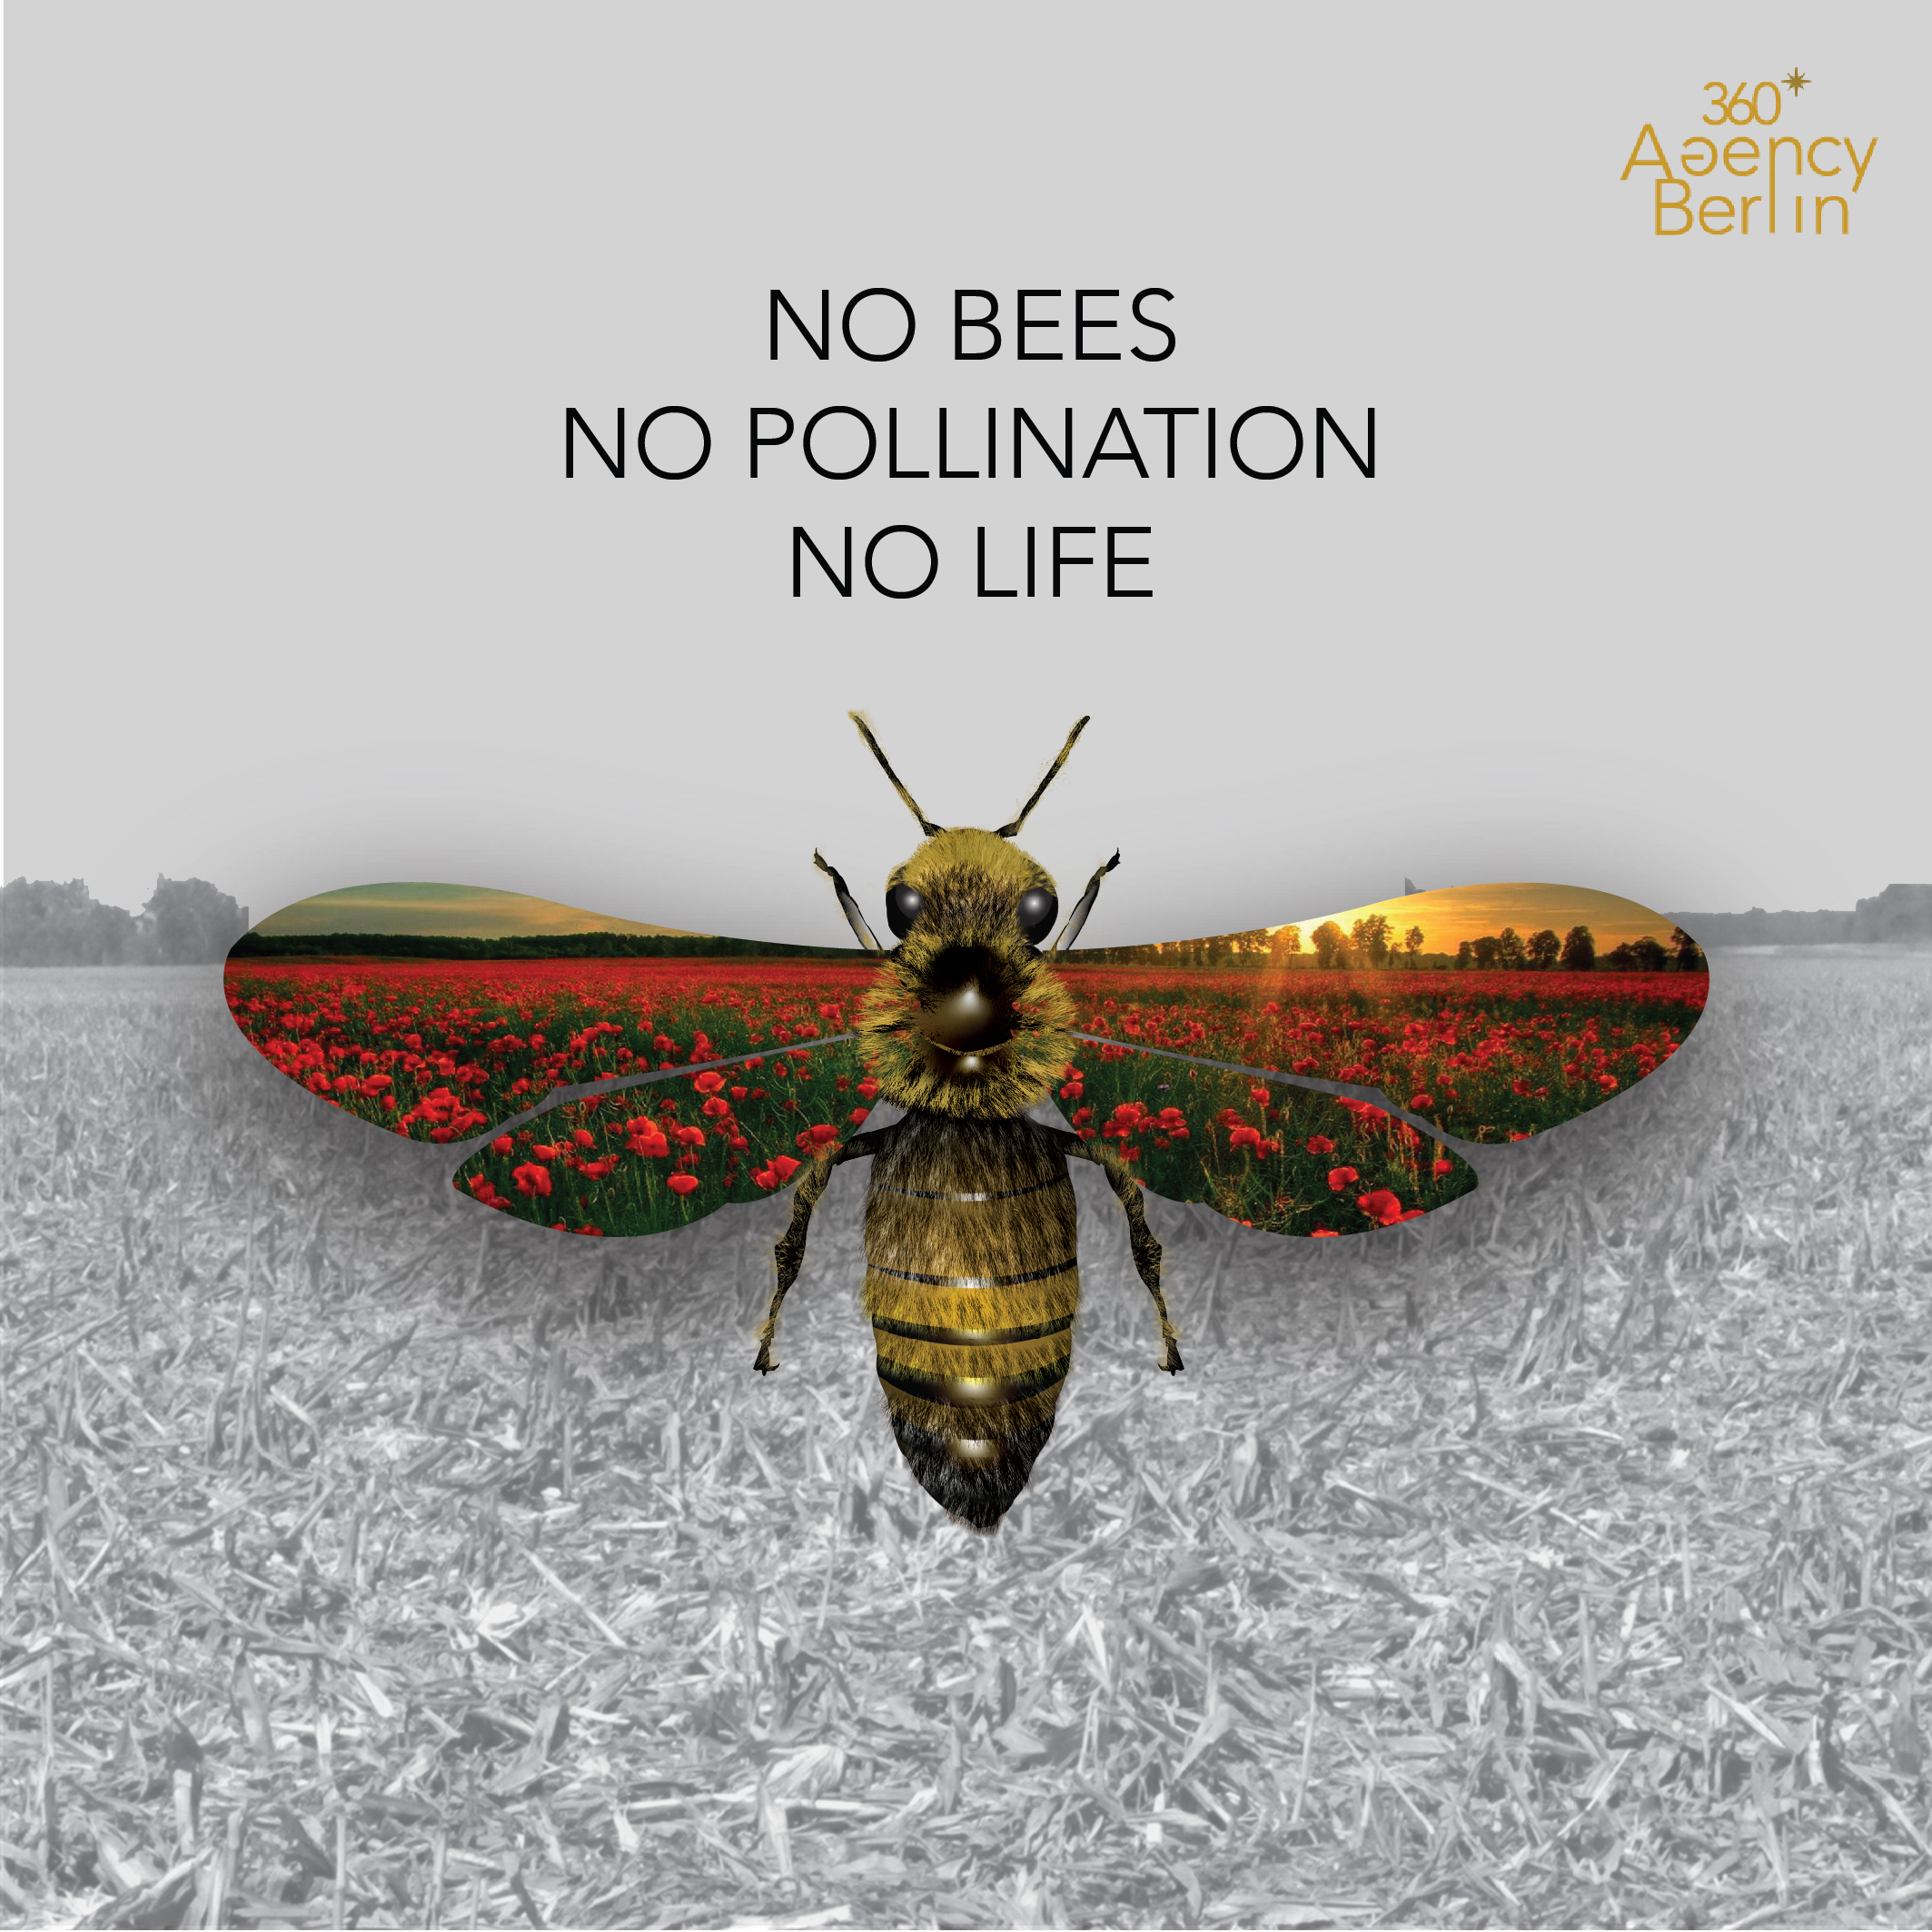 No pollination no life 360 Agency Berlin